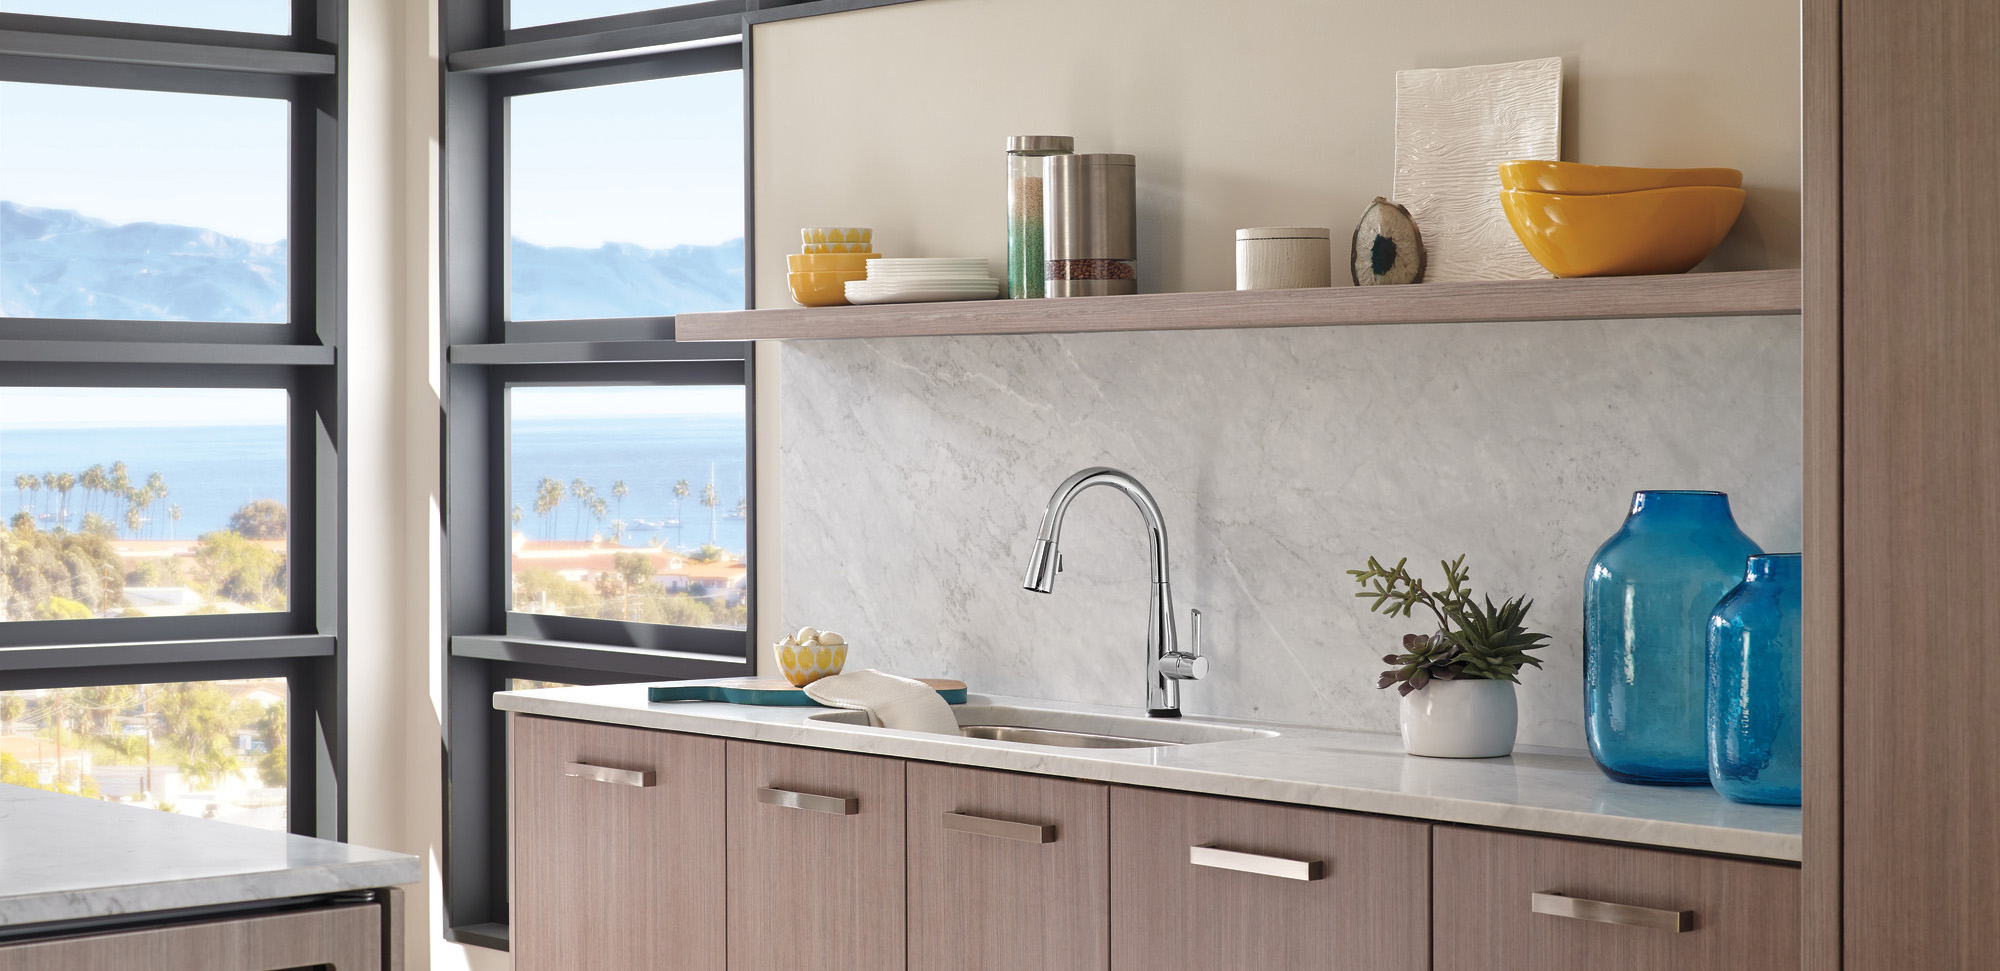 Stylish Kitchen Faucets Make Your Kitchen Fancier In 2019